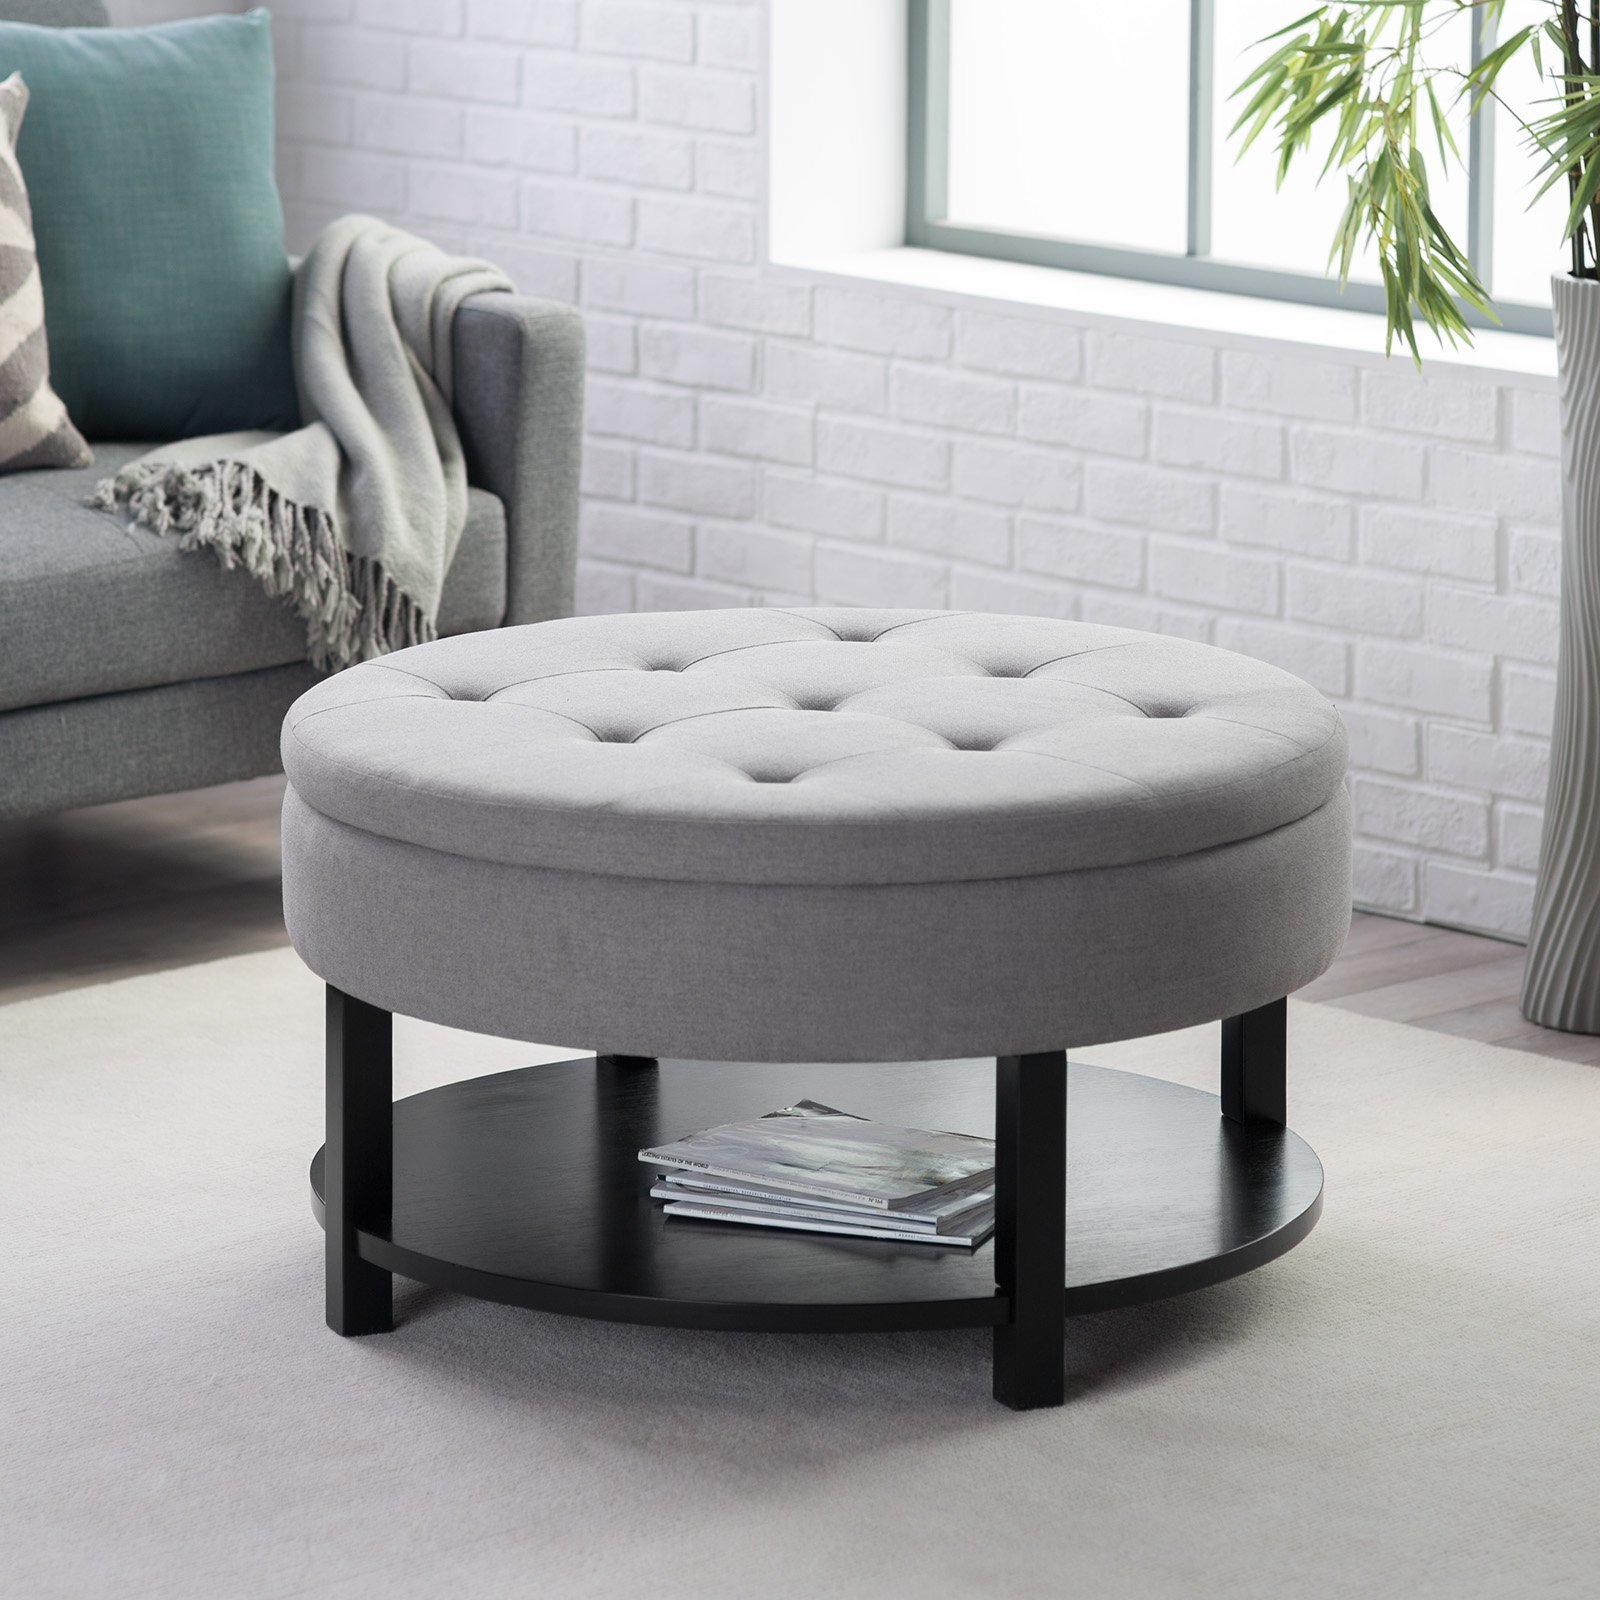 Target Ottoman Storage | Round Storage Ottoman | Cocktail Ottoman with Shelf